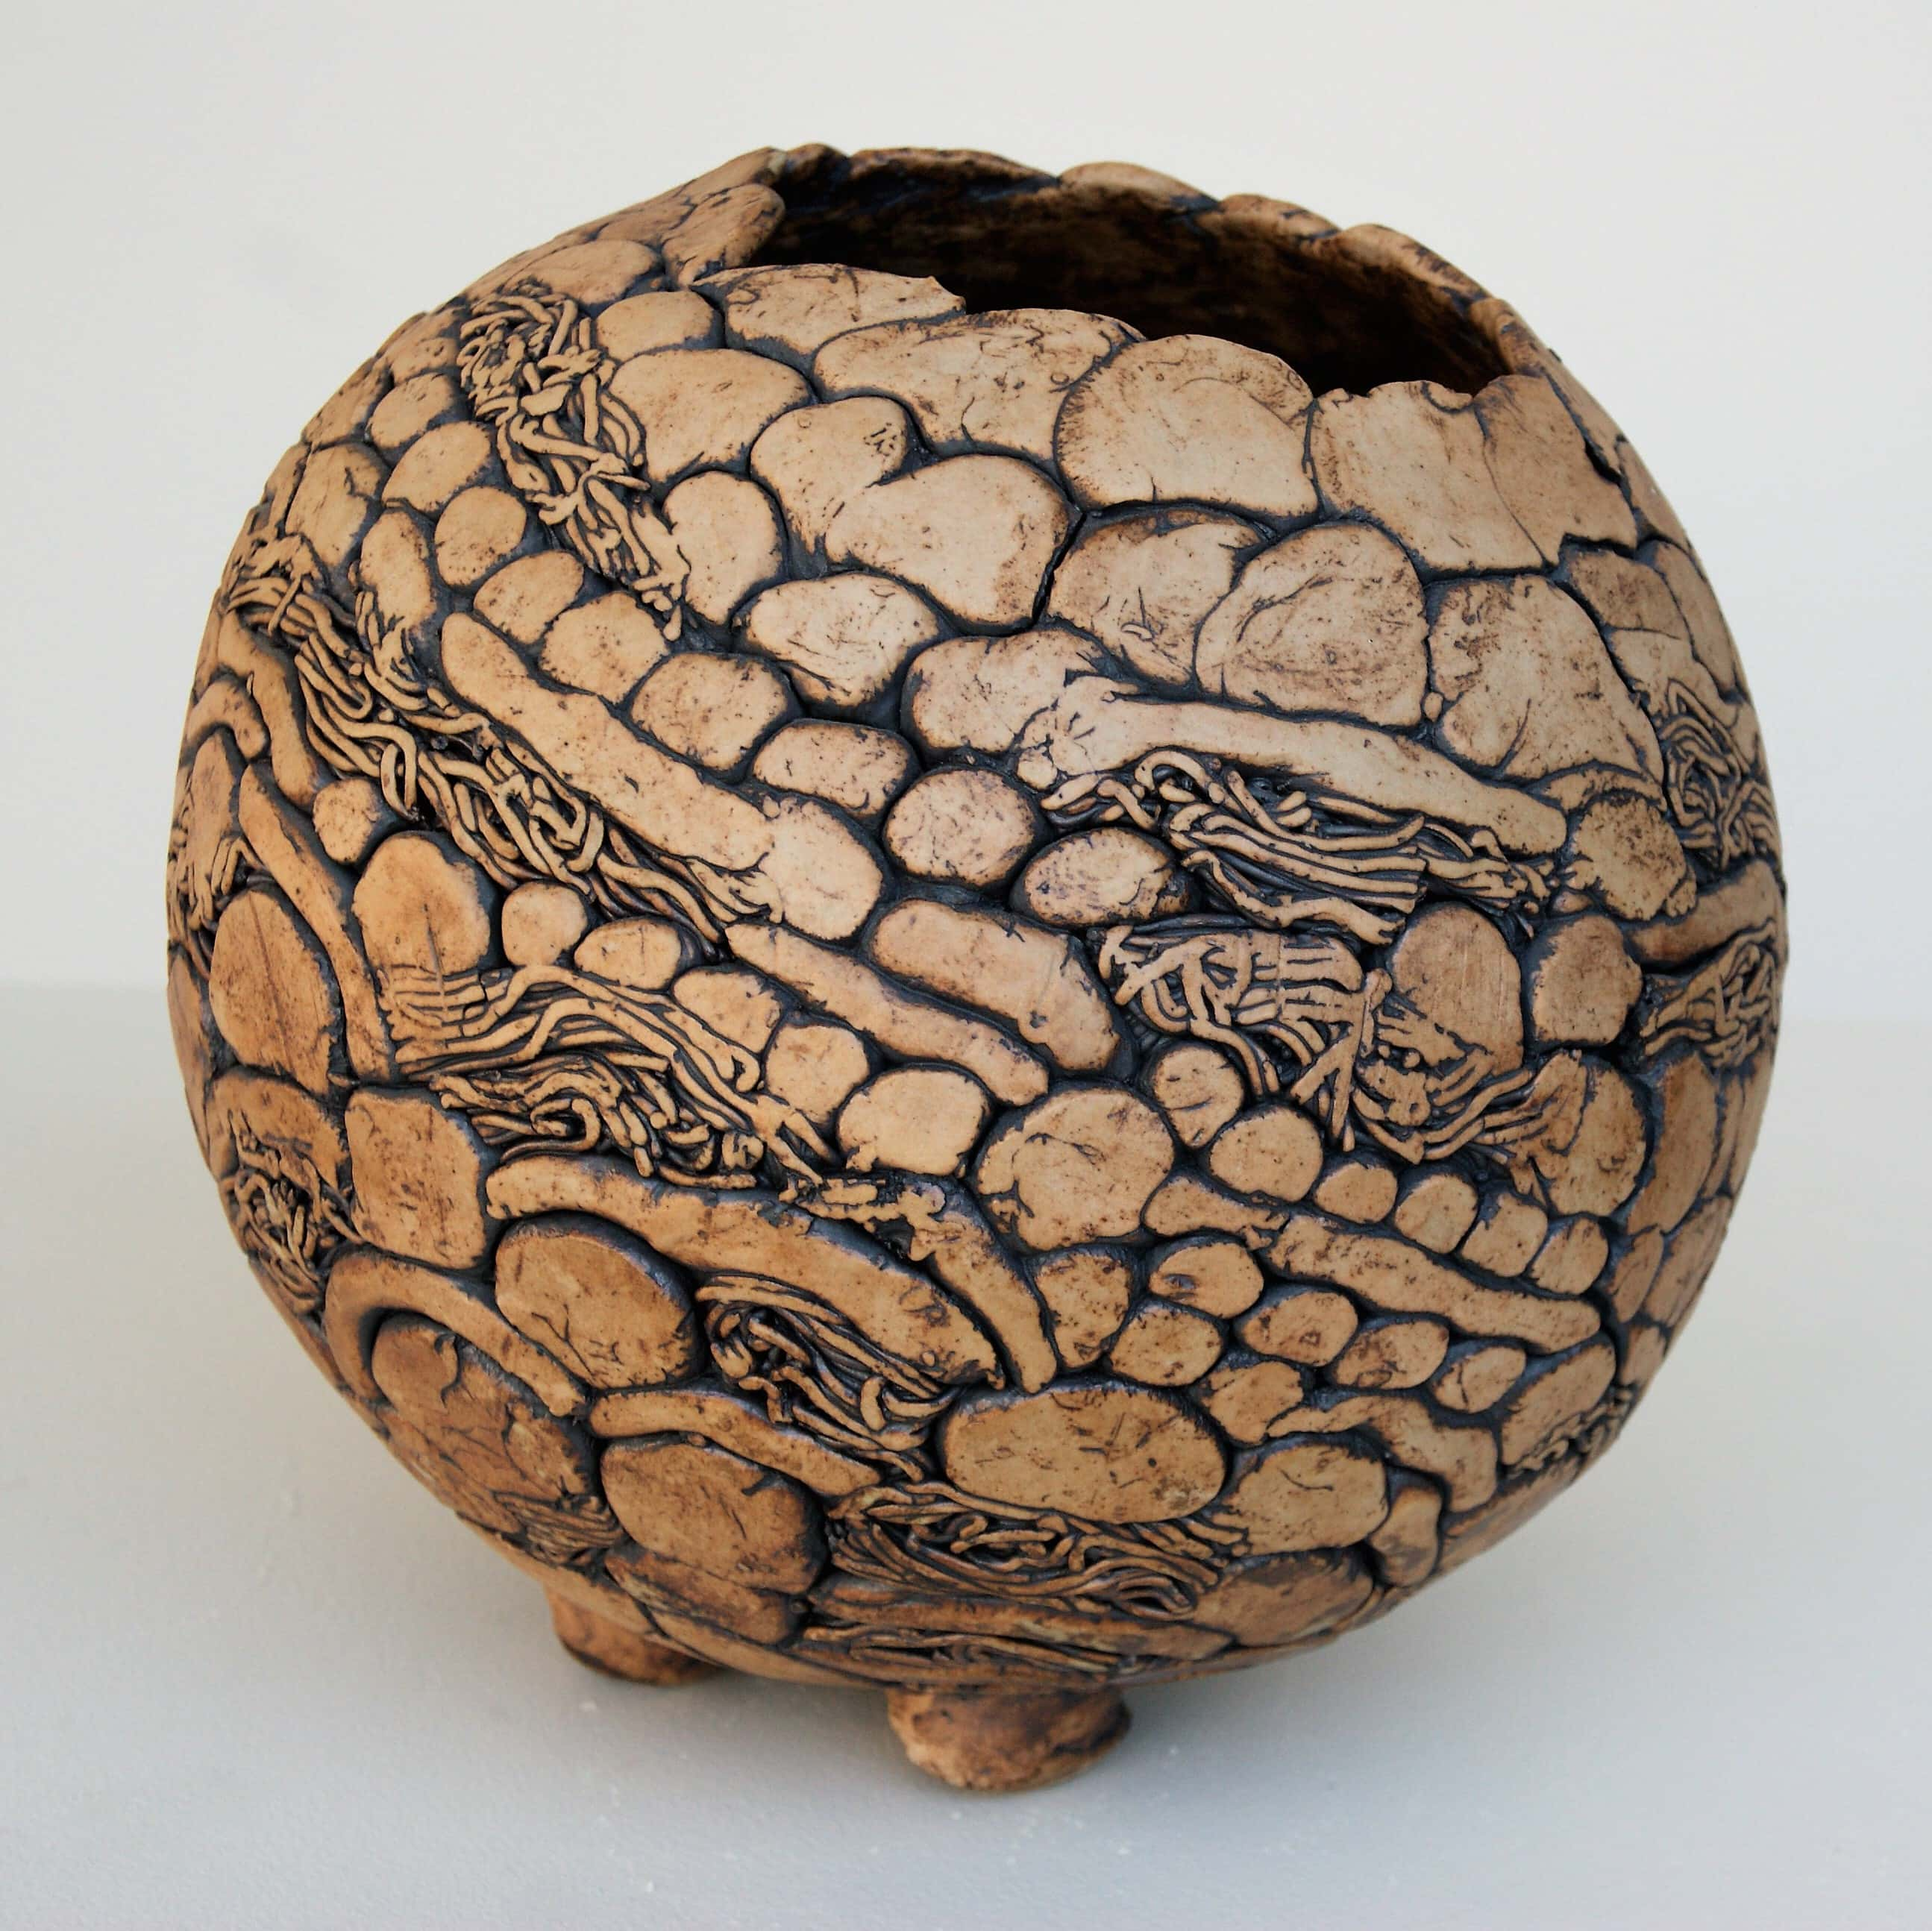 Hand-built, three footed pot featuring coiled surface patterning made using dots, lines and textures with an asymmetrical opening on top.